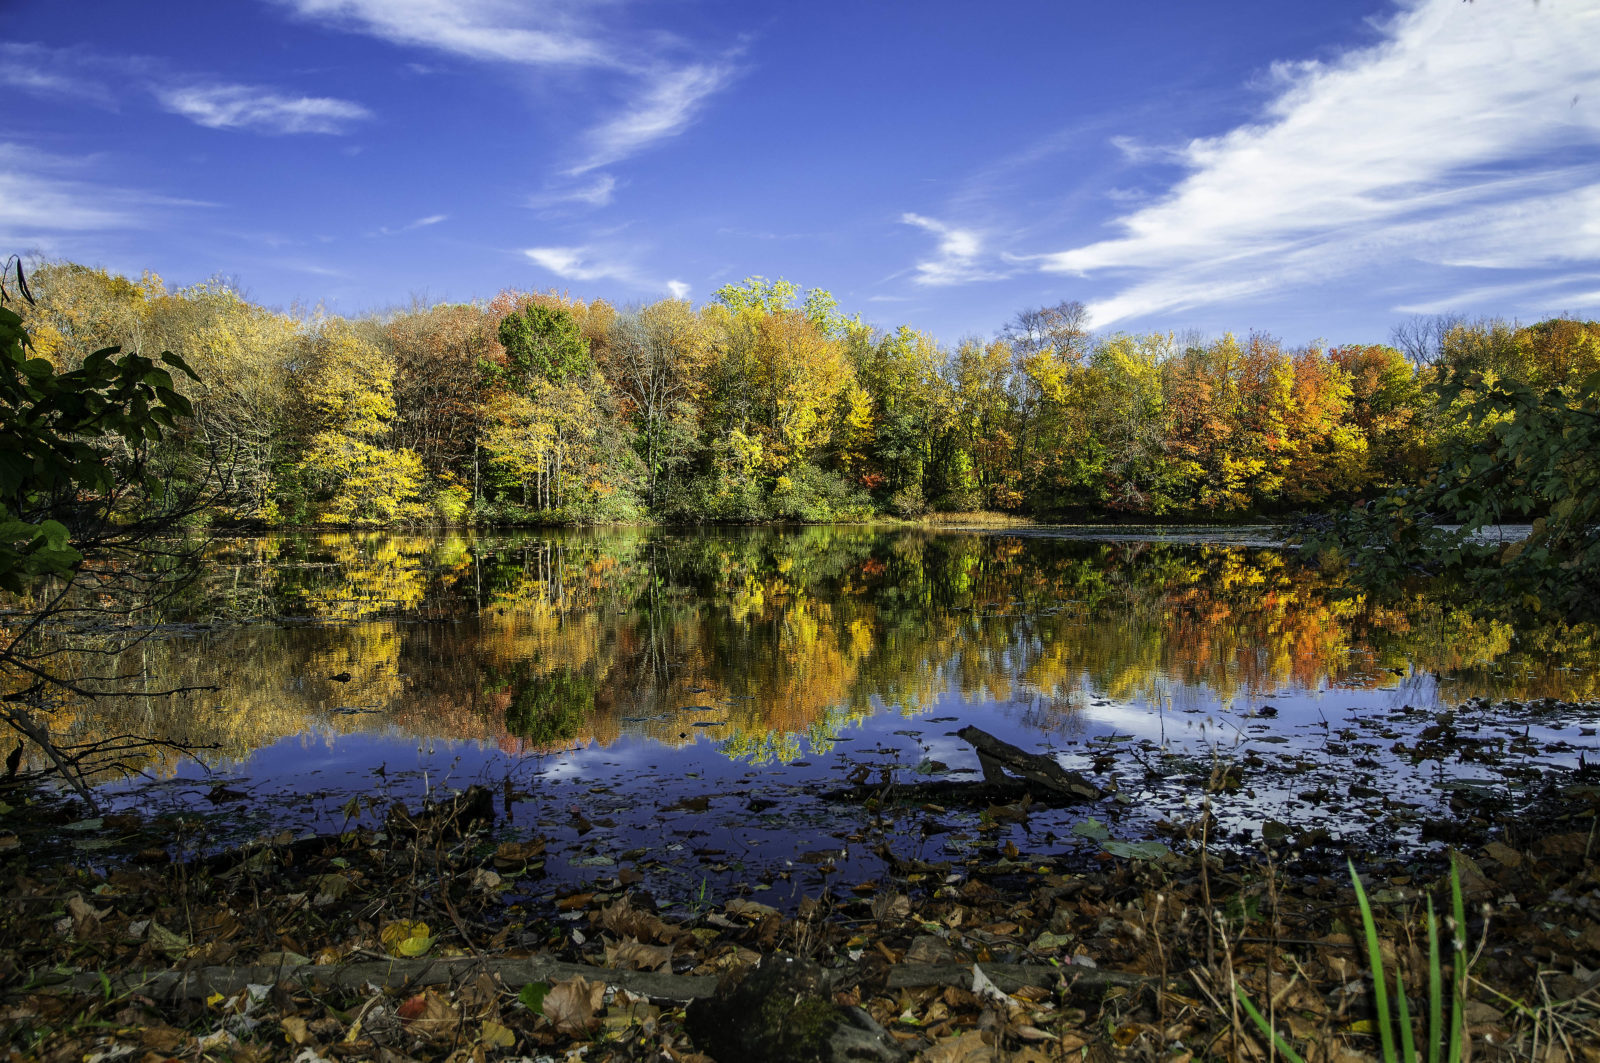 Perry's Mill Pond